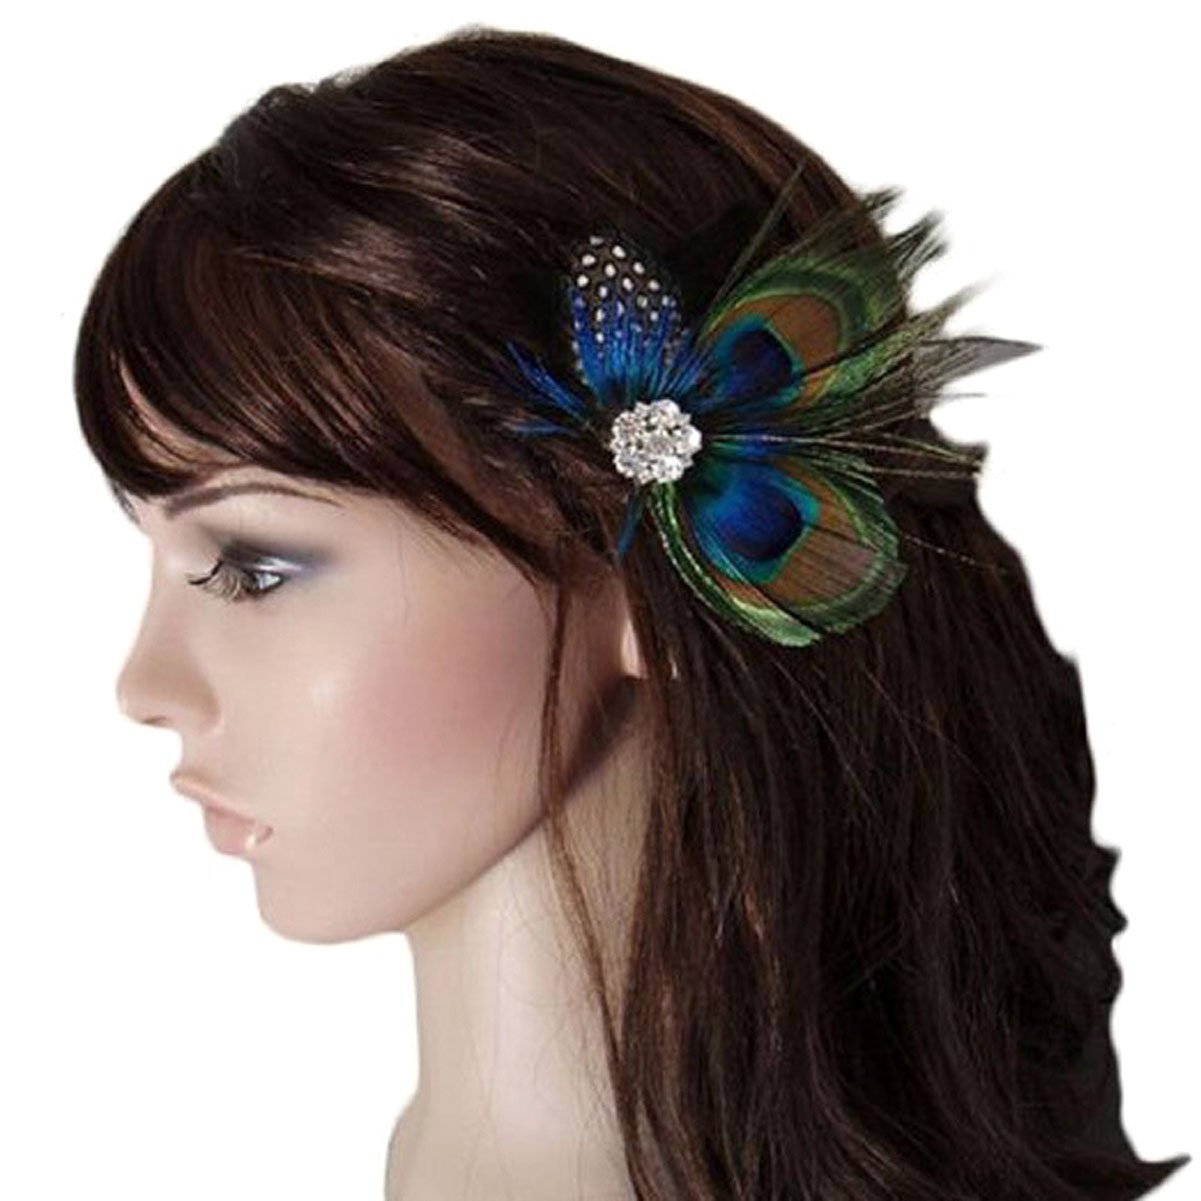 Handmade Boho Cute Peacock Feather Hair Clip Pin Headwear Headband with Rhinestone - Bohemian Bridal Wedding Dance Party Hairpin Hair Accessories for Women and Girls Numblartd